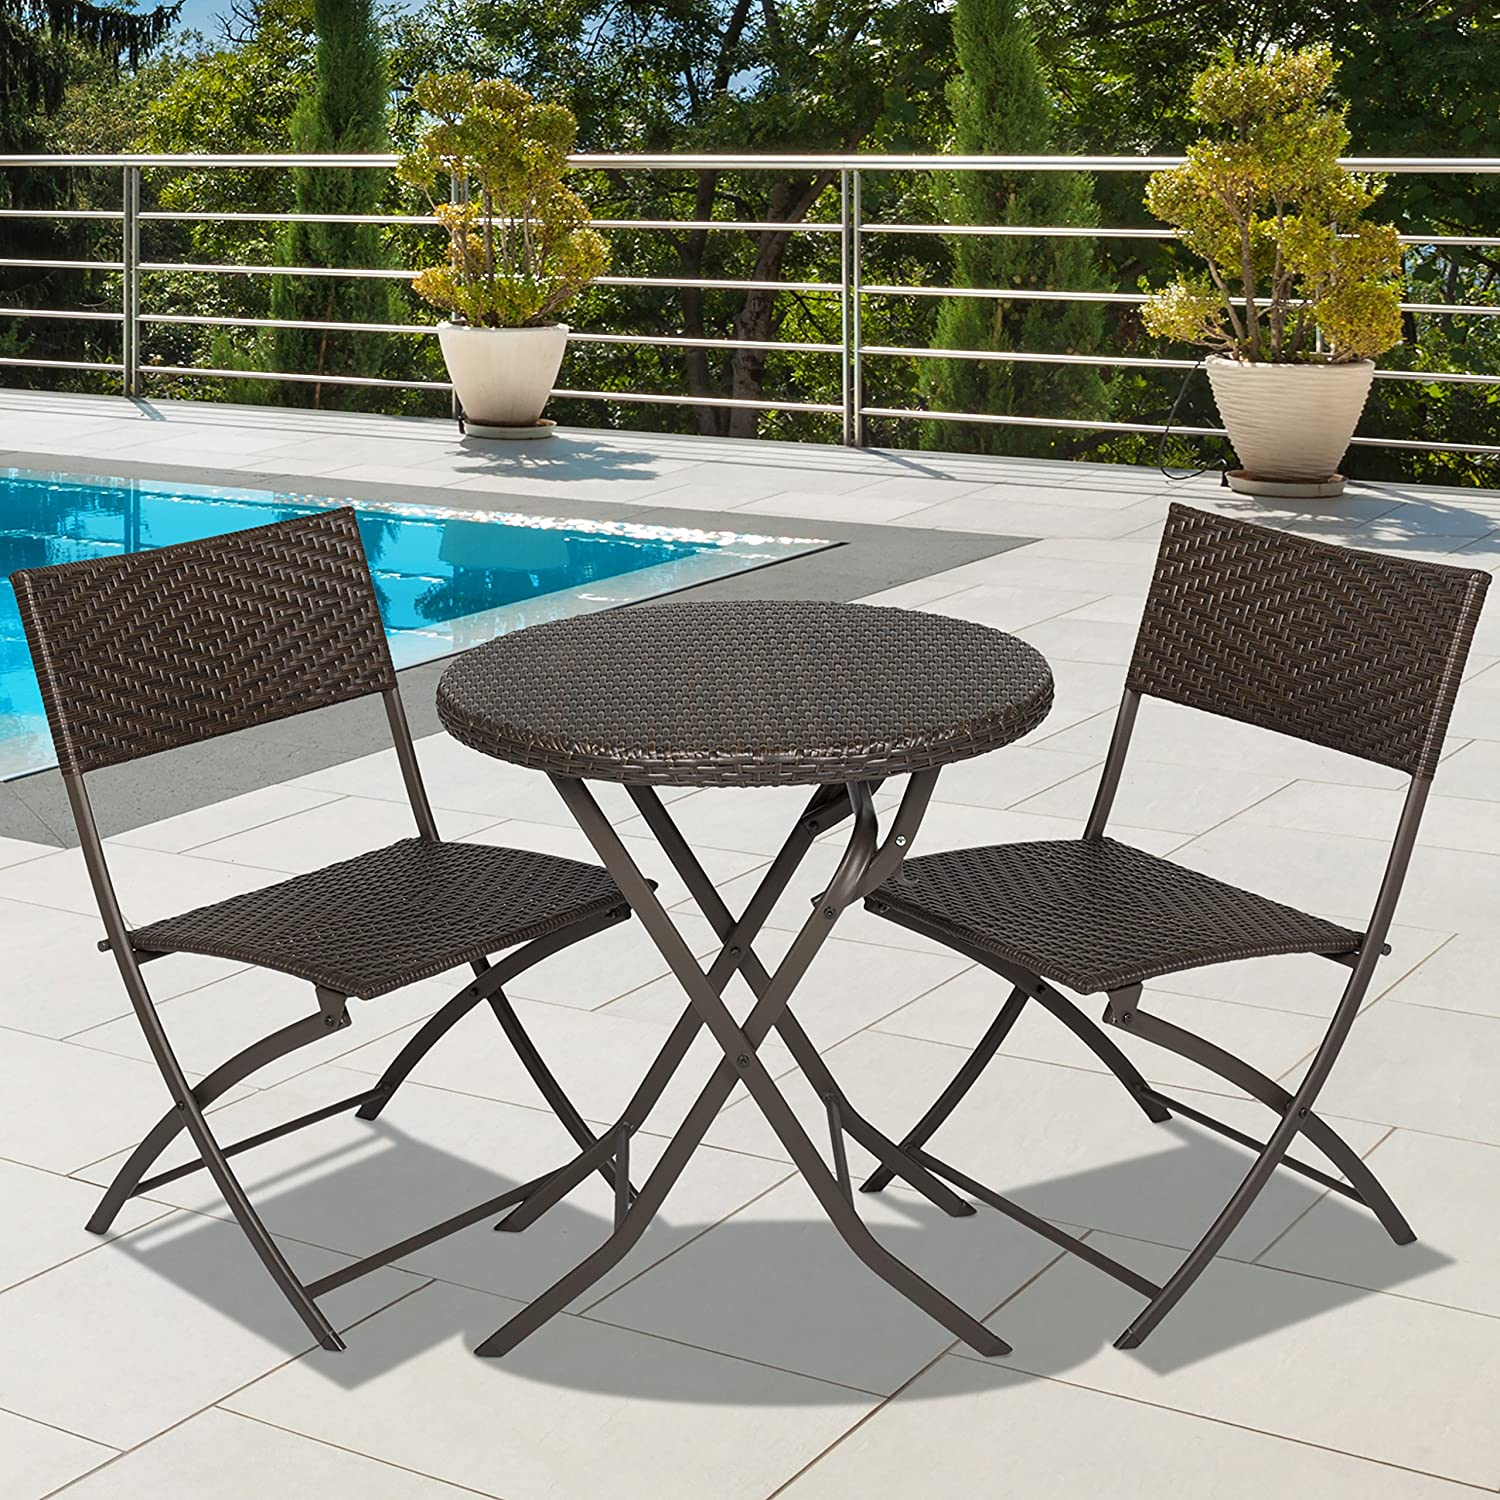 Amazon com  Best Choice Products 3pc Rattan Patio Bistro Set Hand Woven  Furniture  Garden   Outdoor. Amazon com  Best Choice Products 3pc Rattan Patio Bistro Set Hand